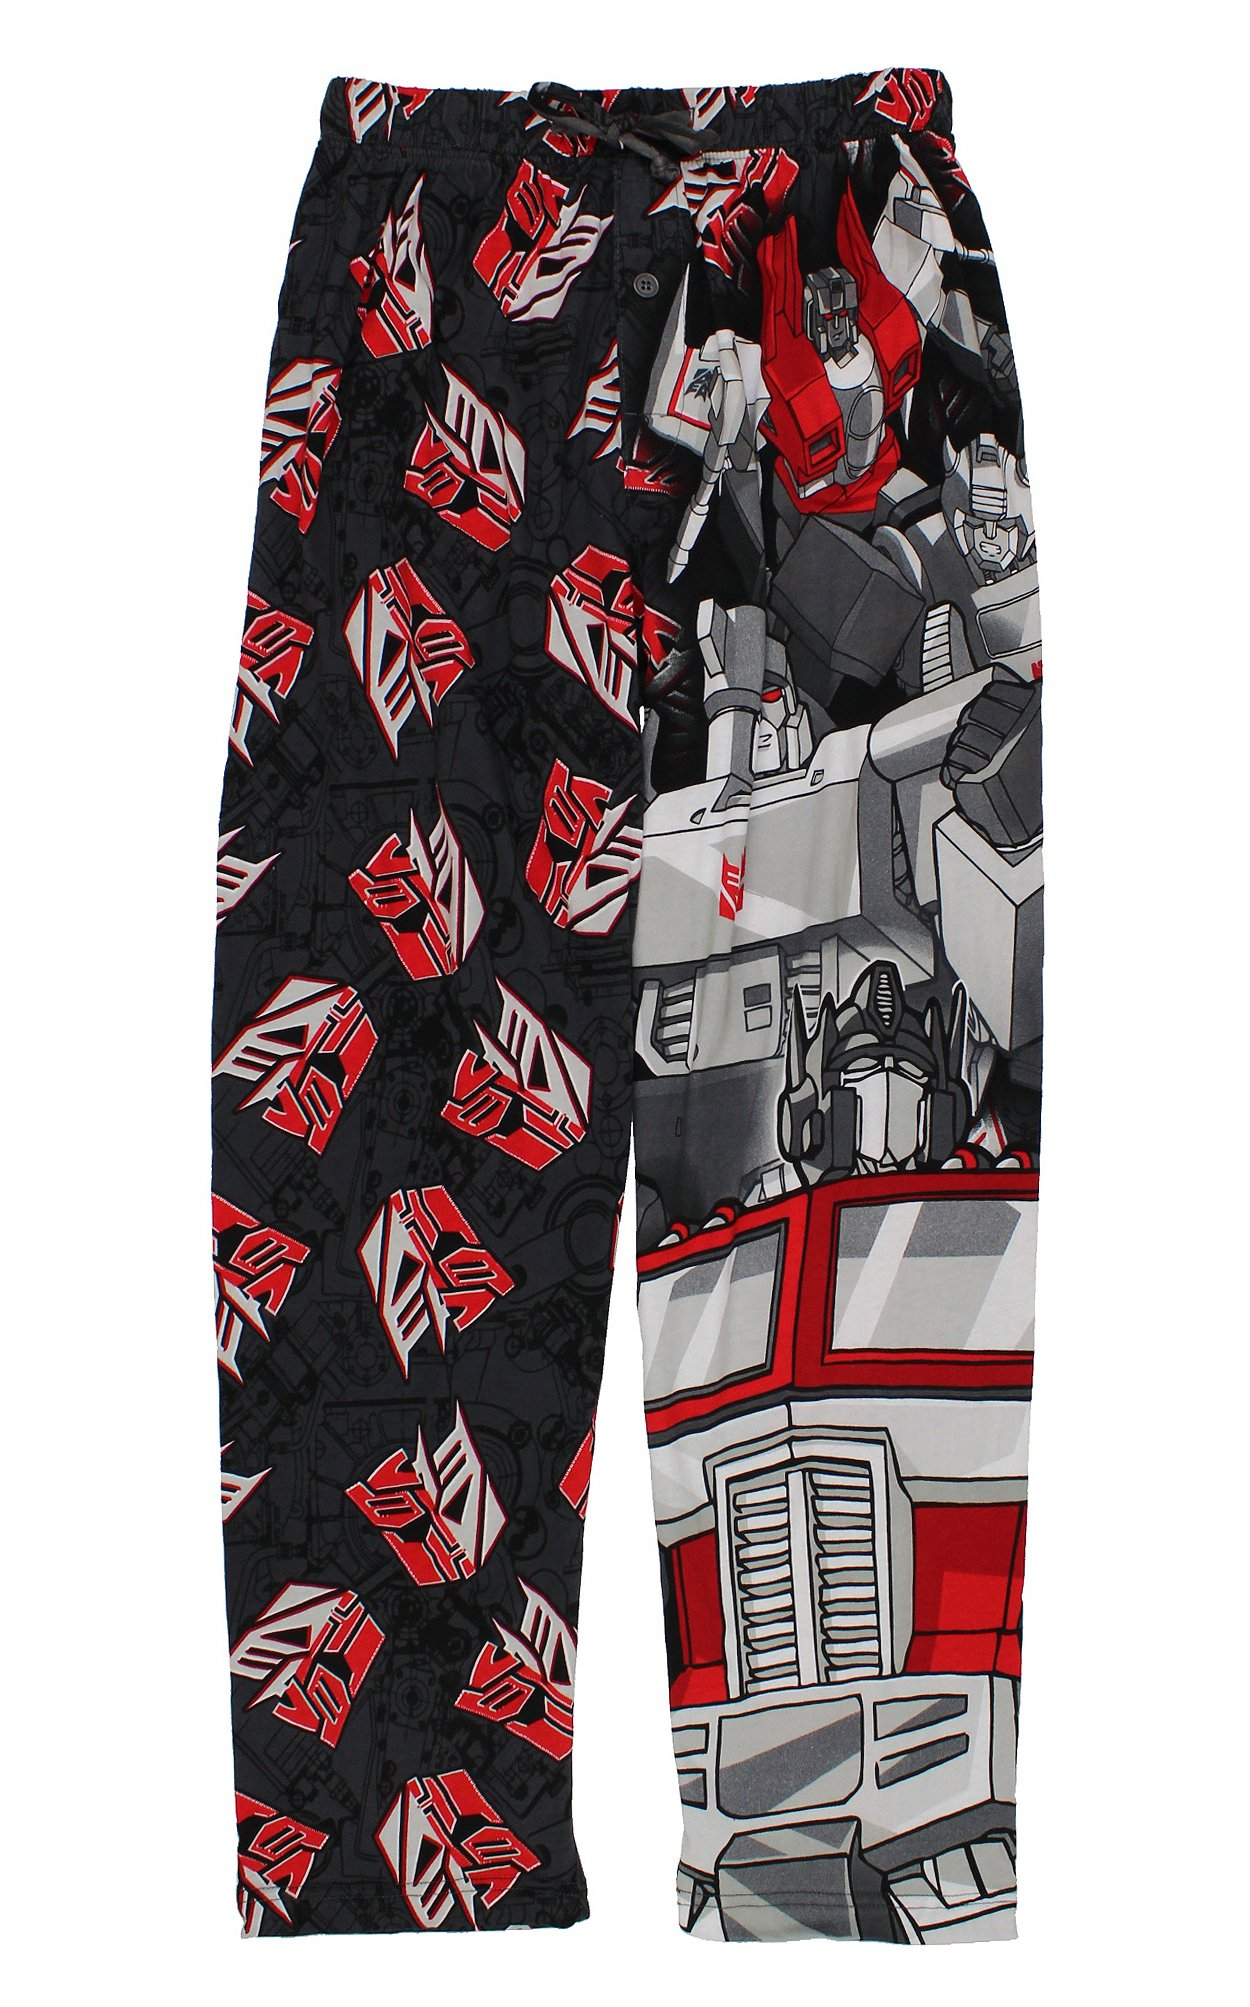 Transformers Mens Lounge Pants (Small, Grey/Red)